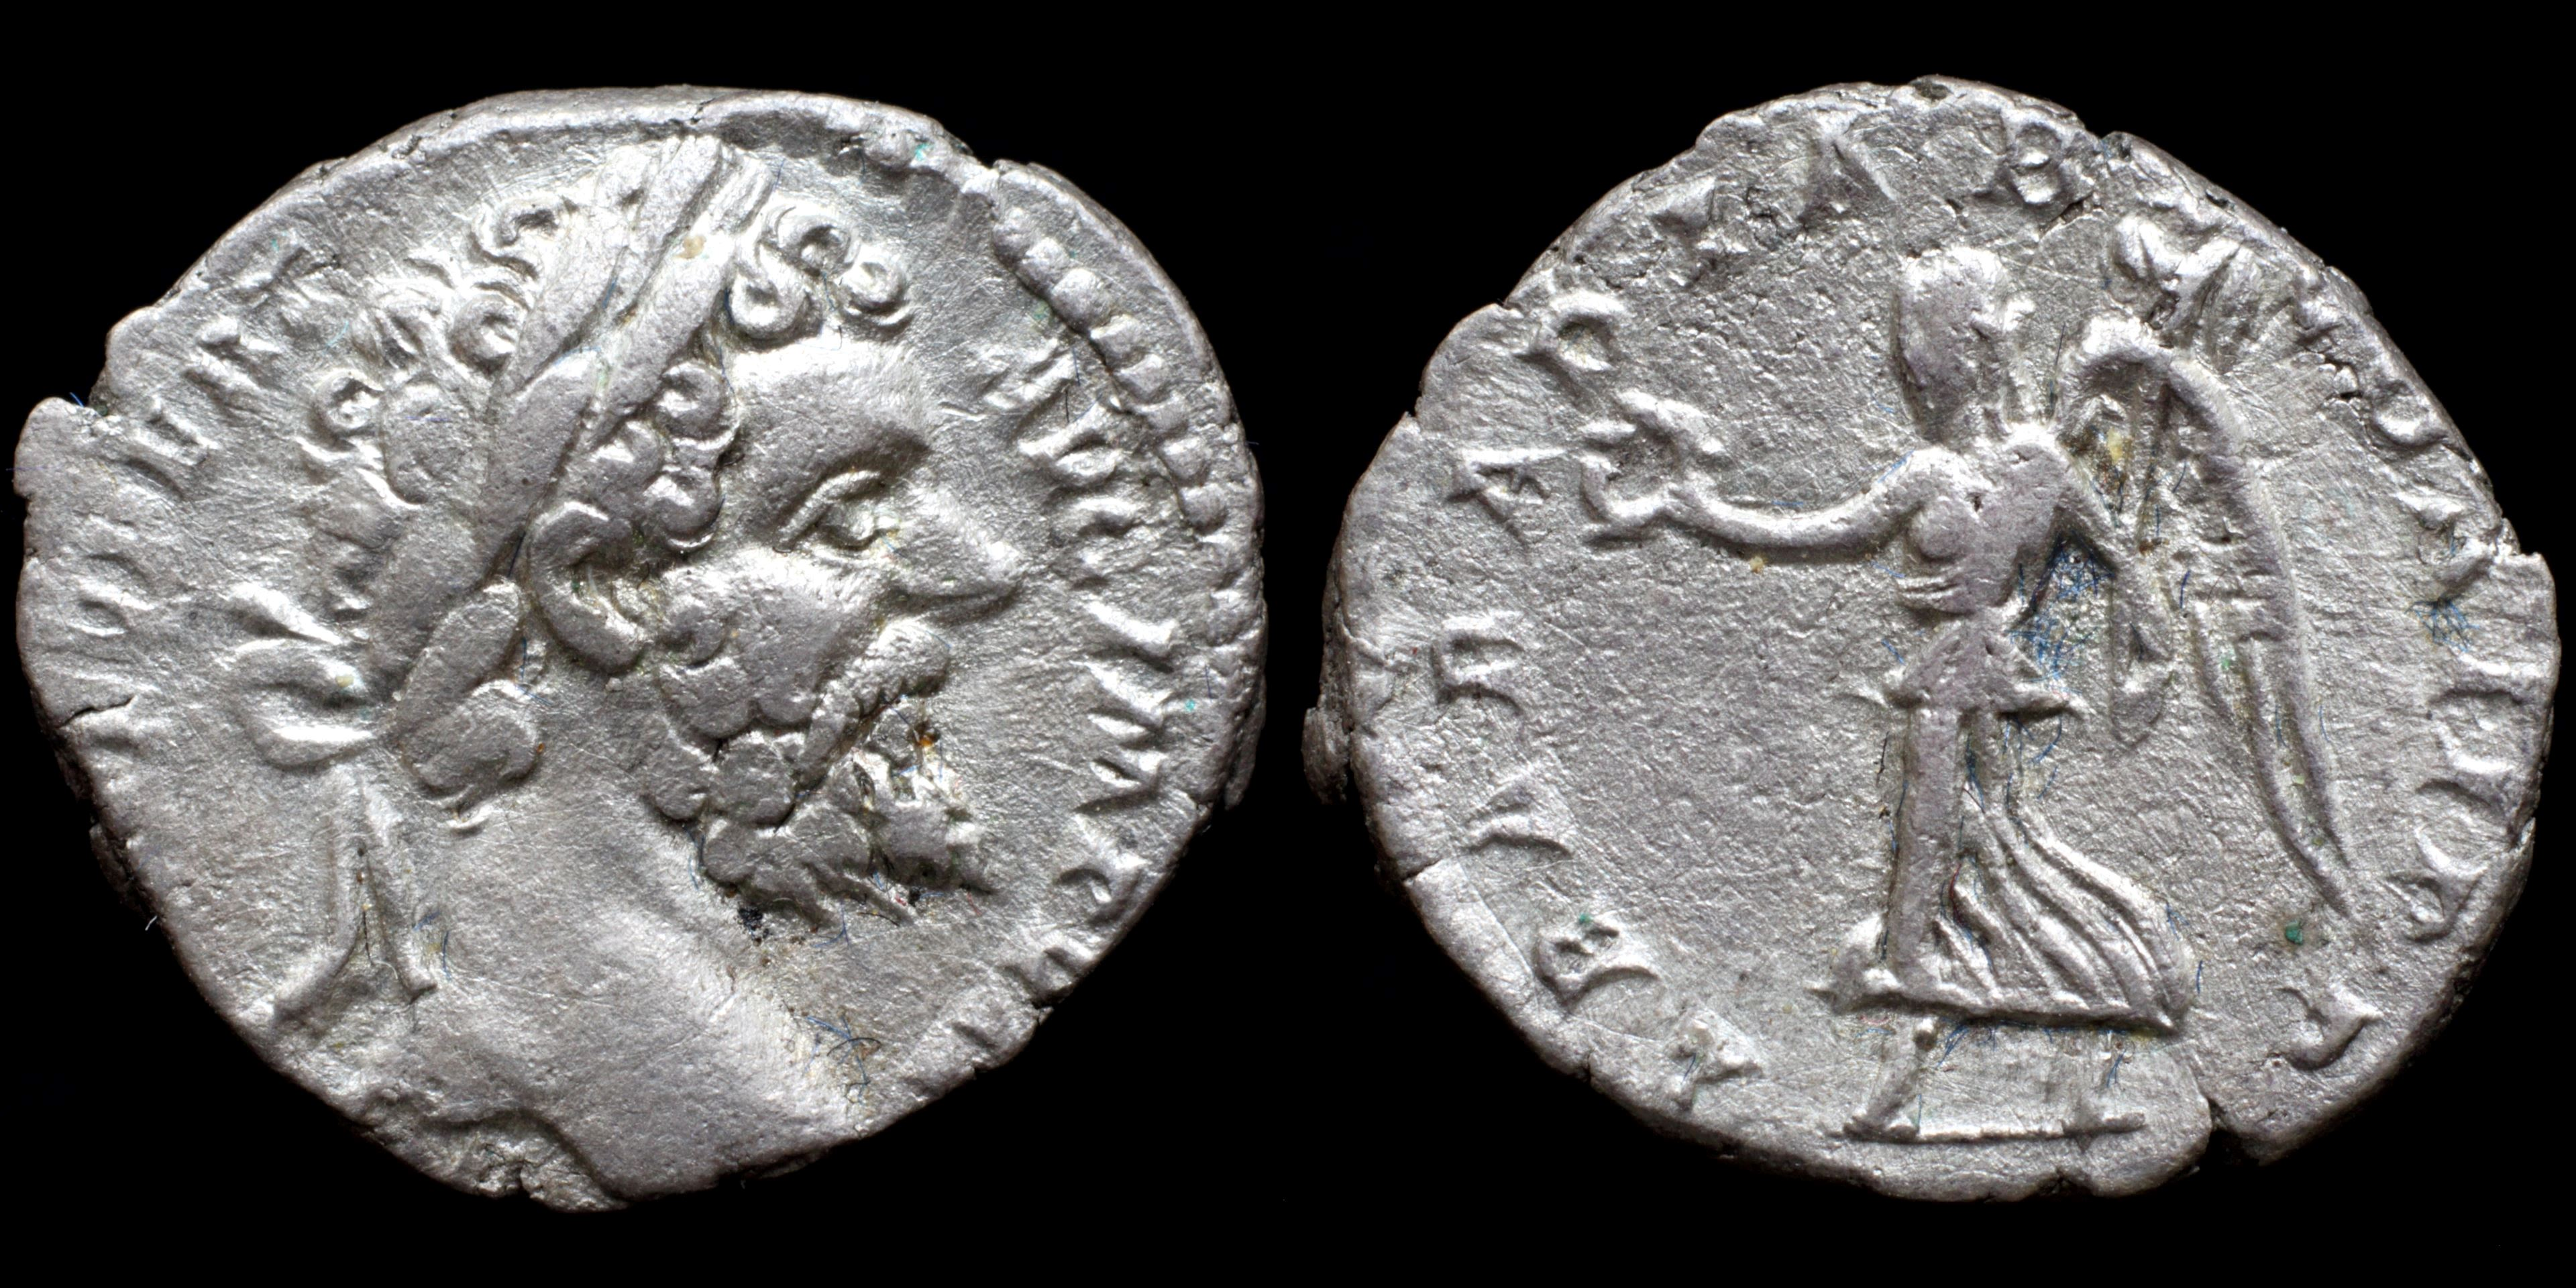 /Files/Images/Coinsite/CoinDB/244_Septimius_Victory.JPG